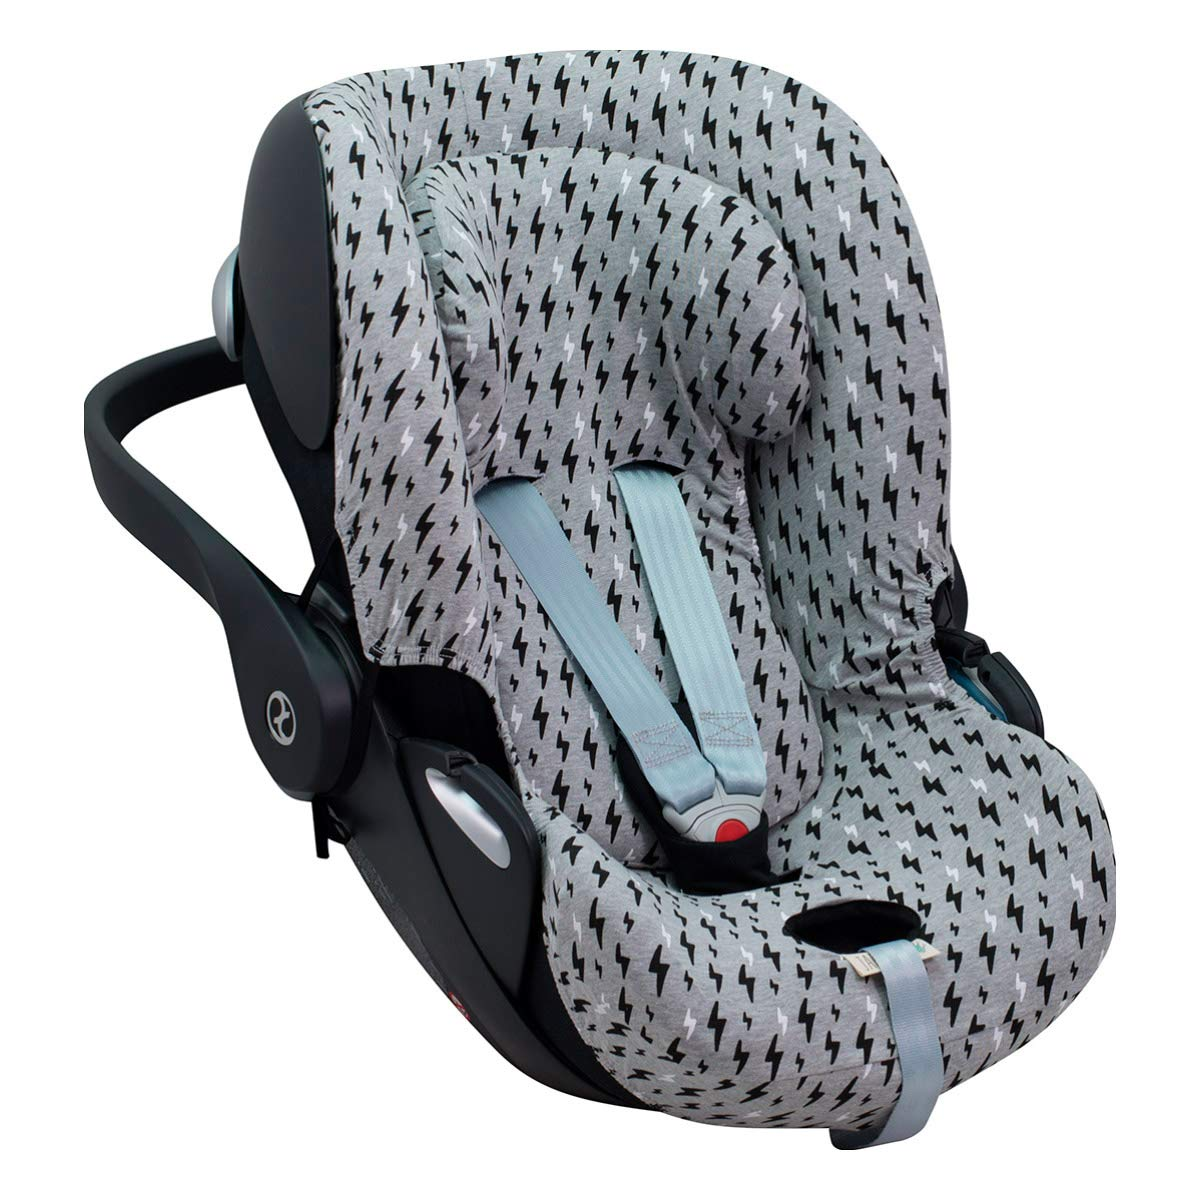 Cloud Q 2 Cloud Q-M Black Rayo M JANABEBE Cover Liner Compatible with Cybex Aton